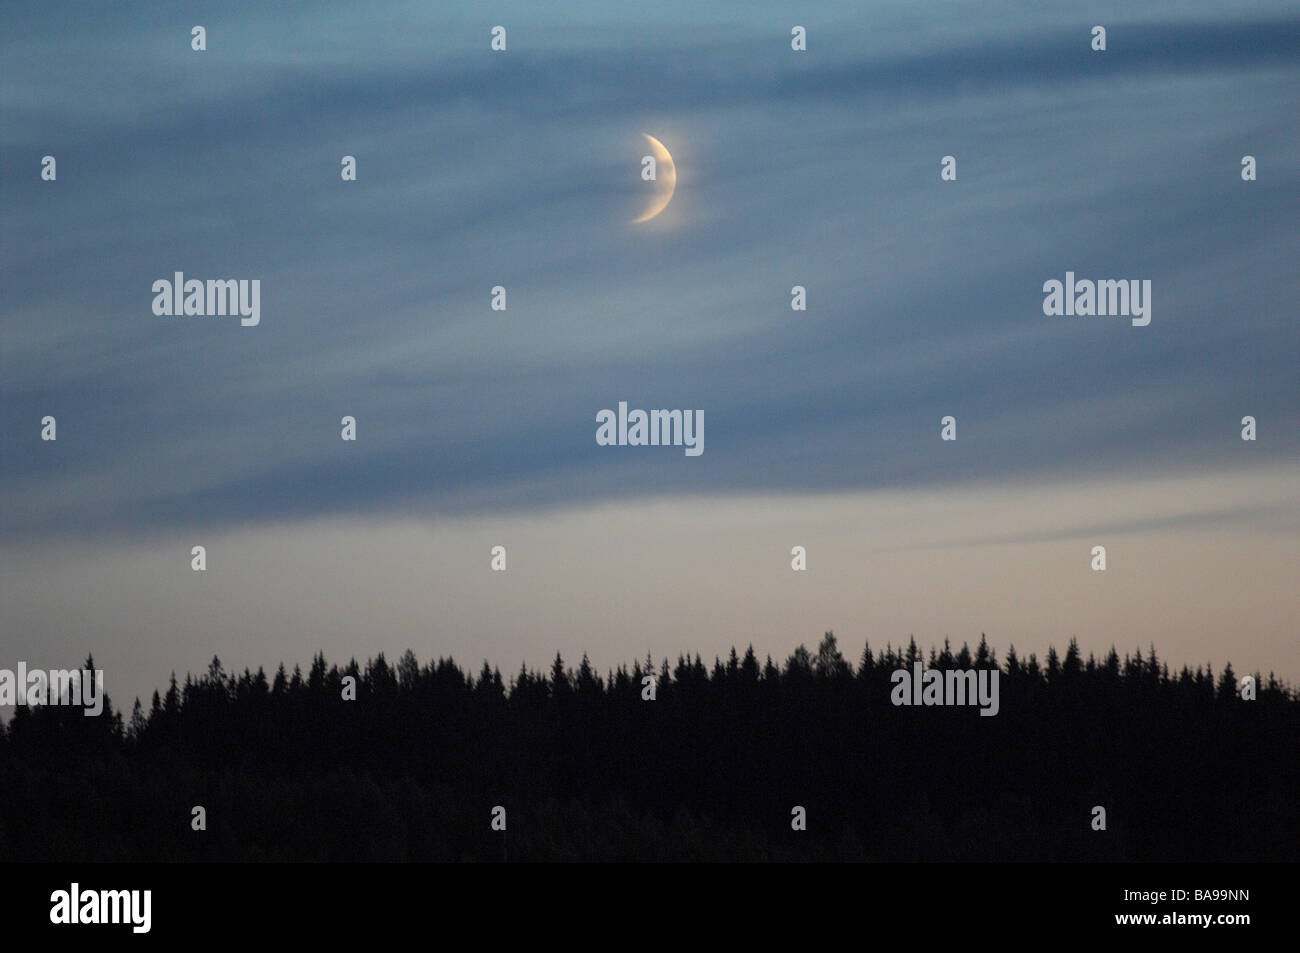 A moon over a forest, Sweden. - Stock Image